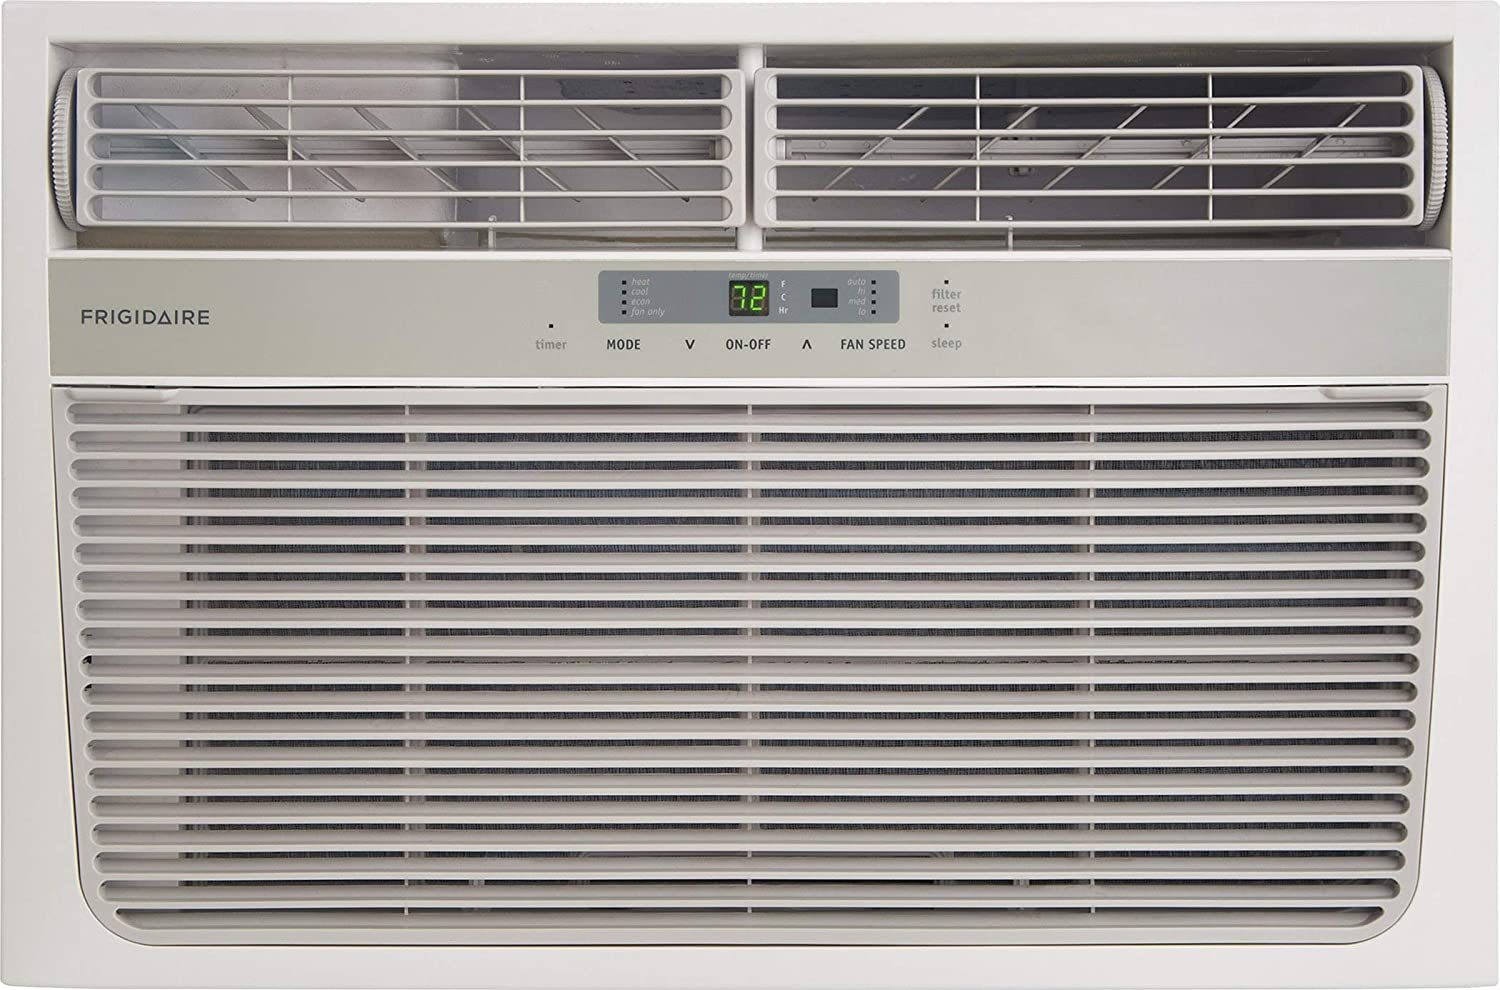 FRIGIDAIRE 11,000 BTU 115-Volt Heat/Cool Window Air Conditioner with Remote Control White